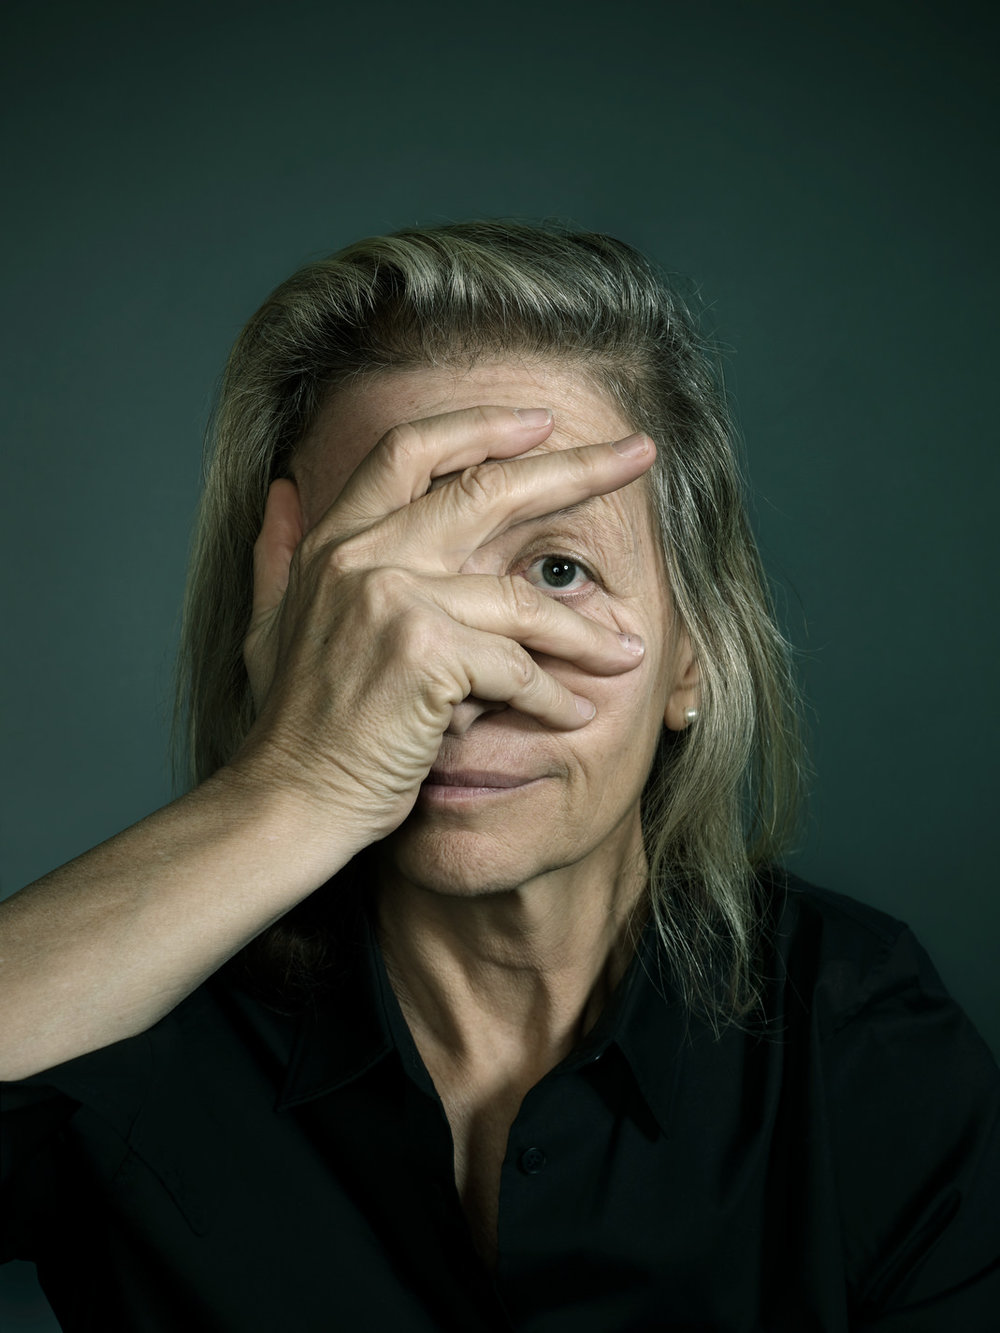 An image by Seattle-based photographer  John Keatley  of Annie Leibovitz.   Photograph by John Keatley